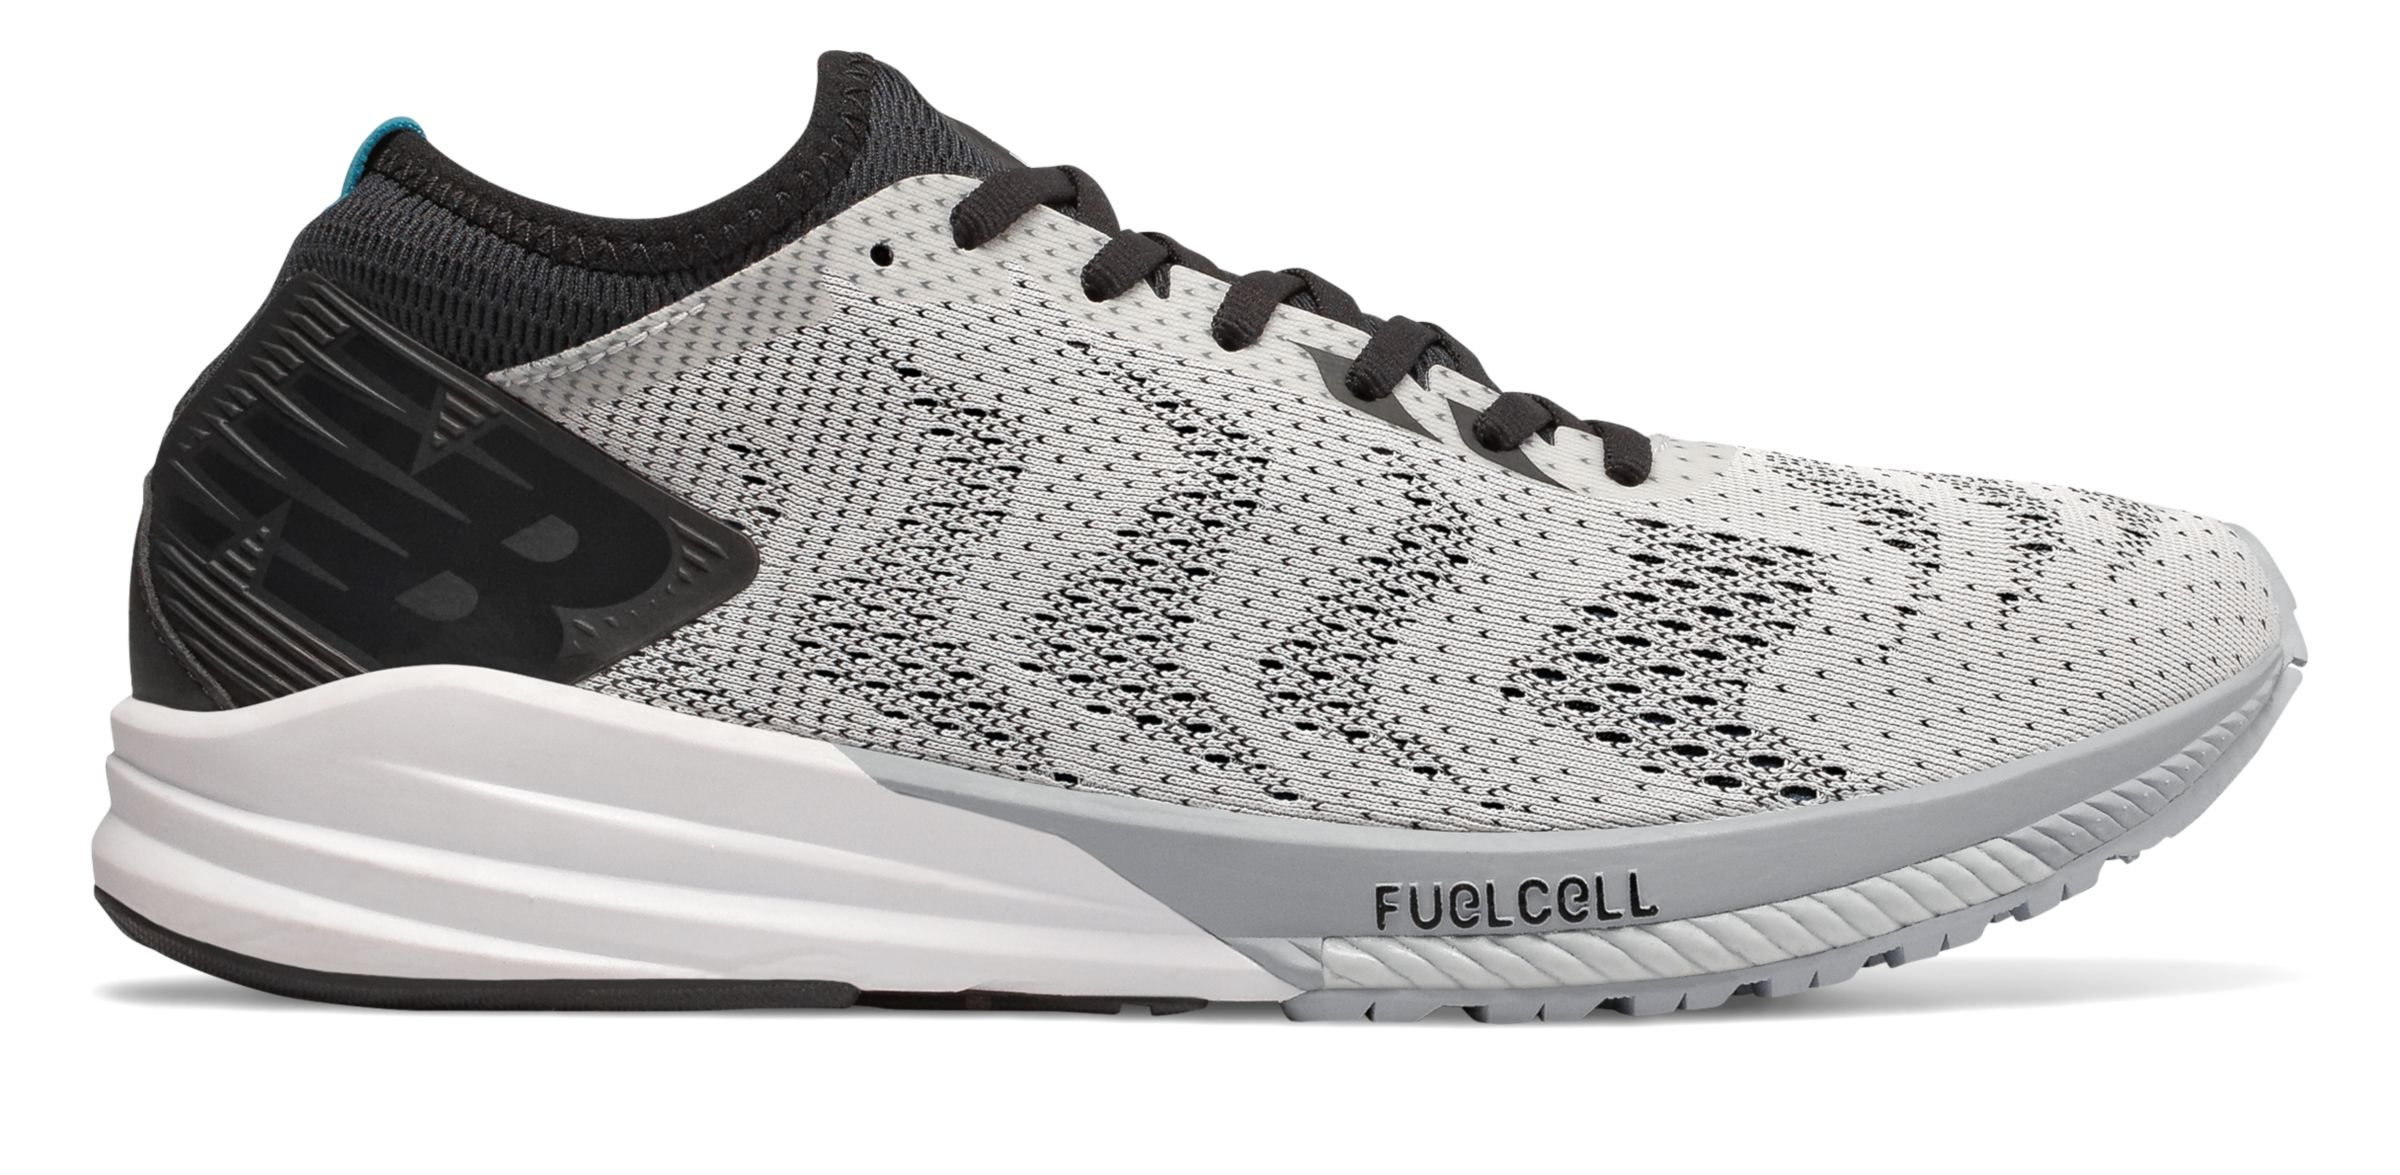 Men's FuelCell Impulse